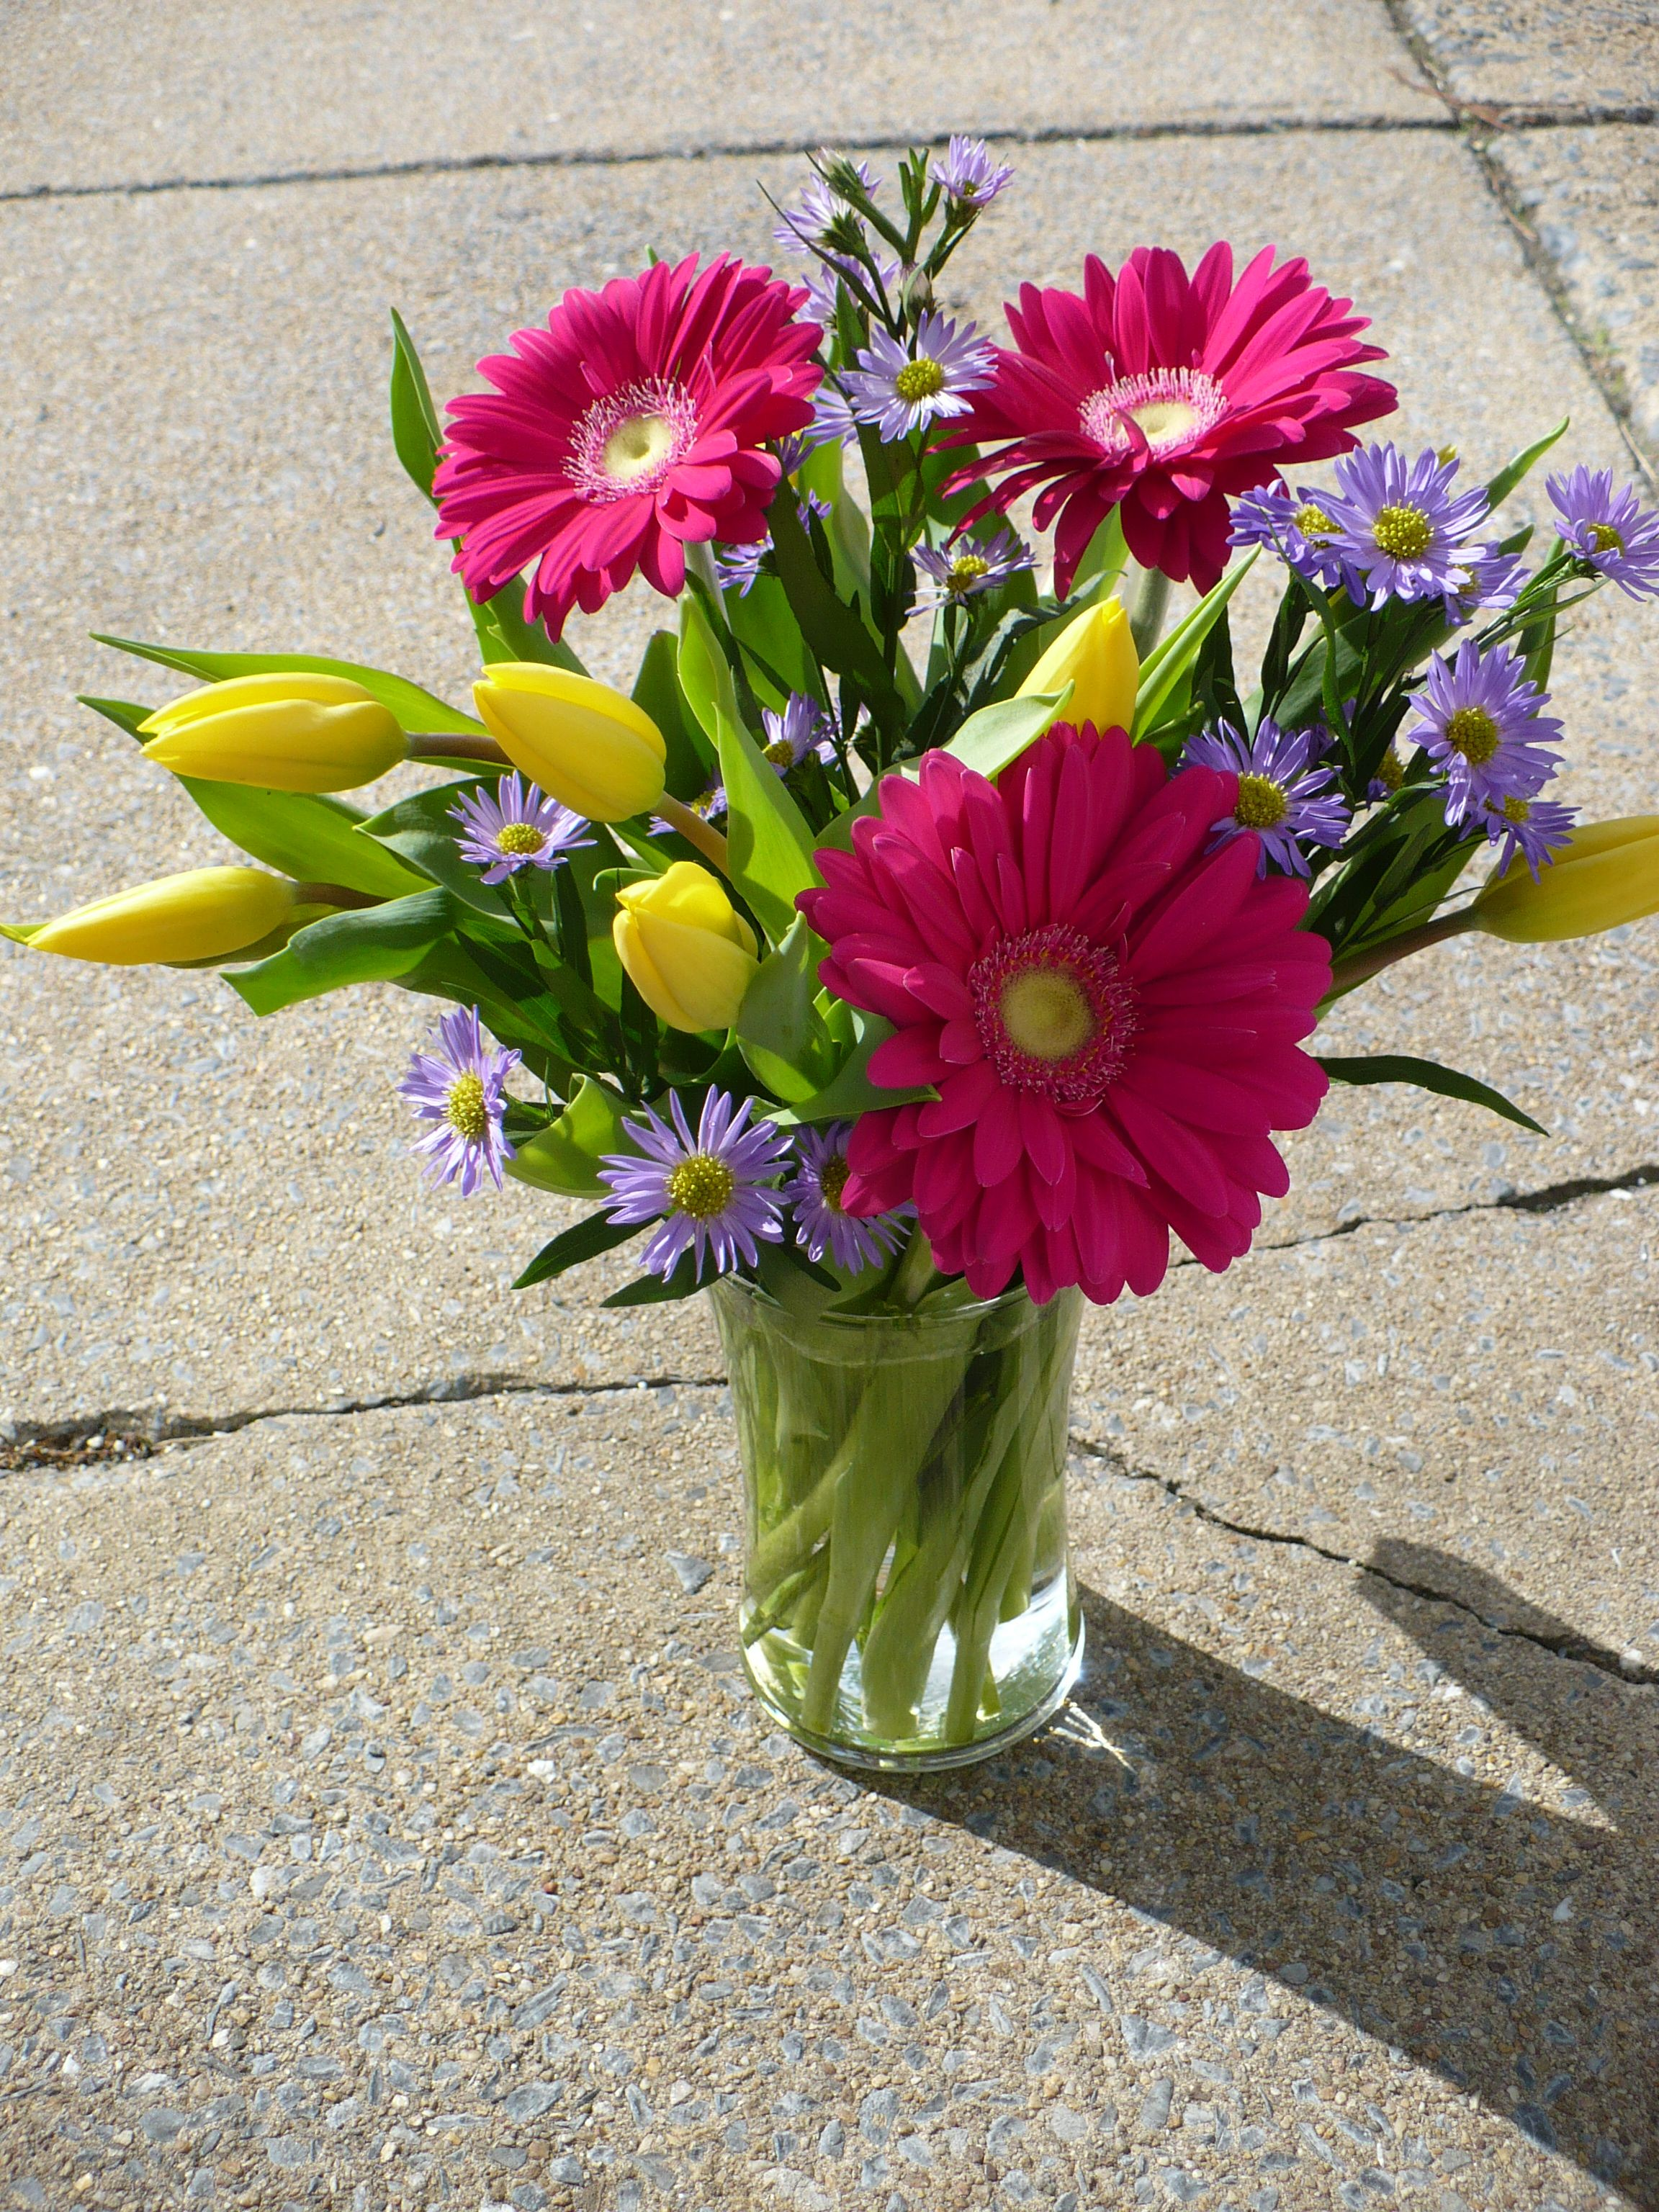 Gerbera Daisies Tulips And Purple Wild Daisies Flowers For Any